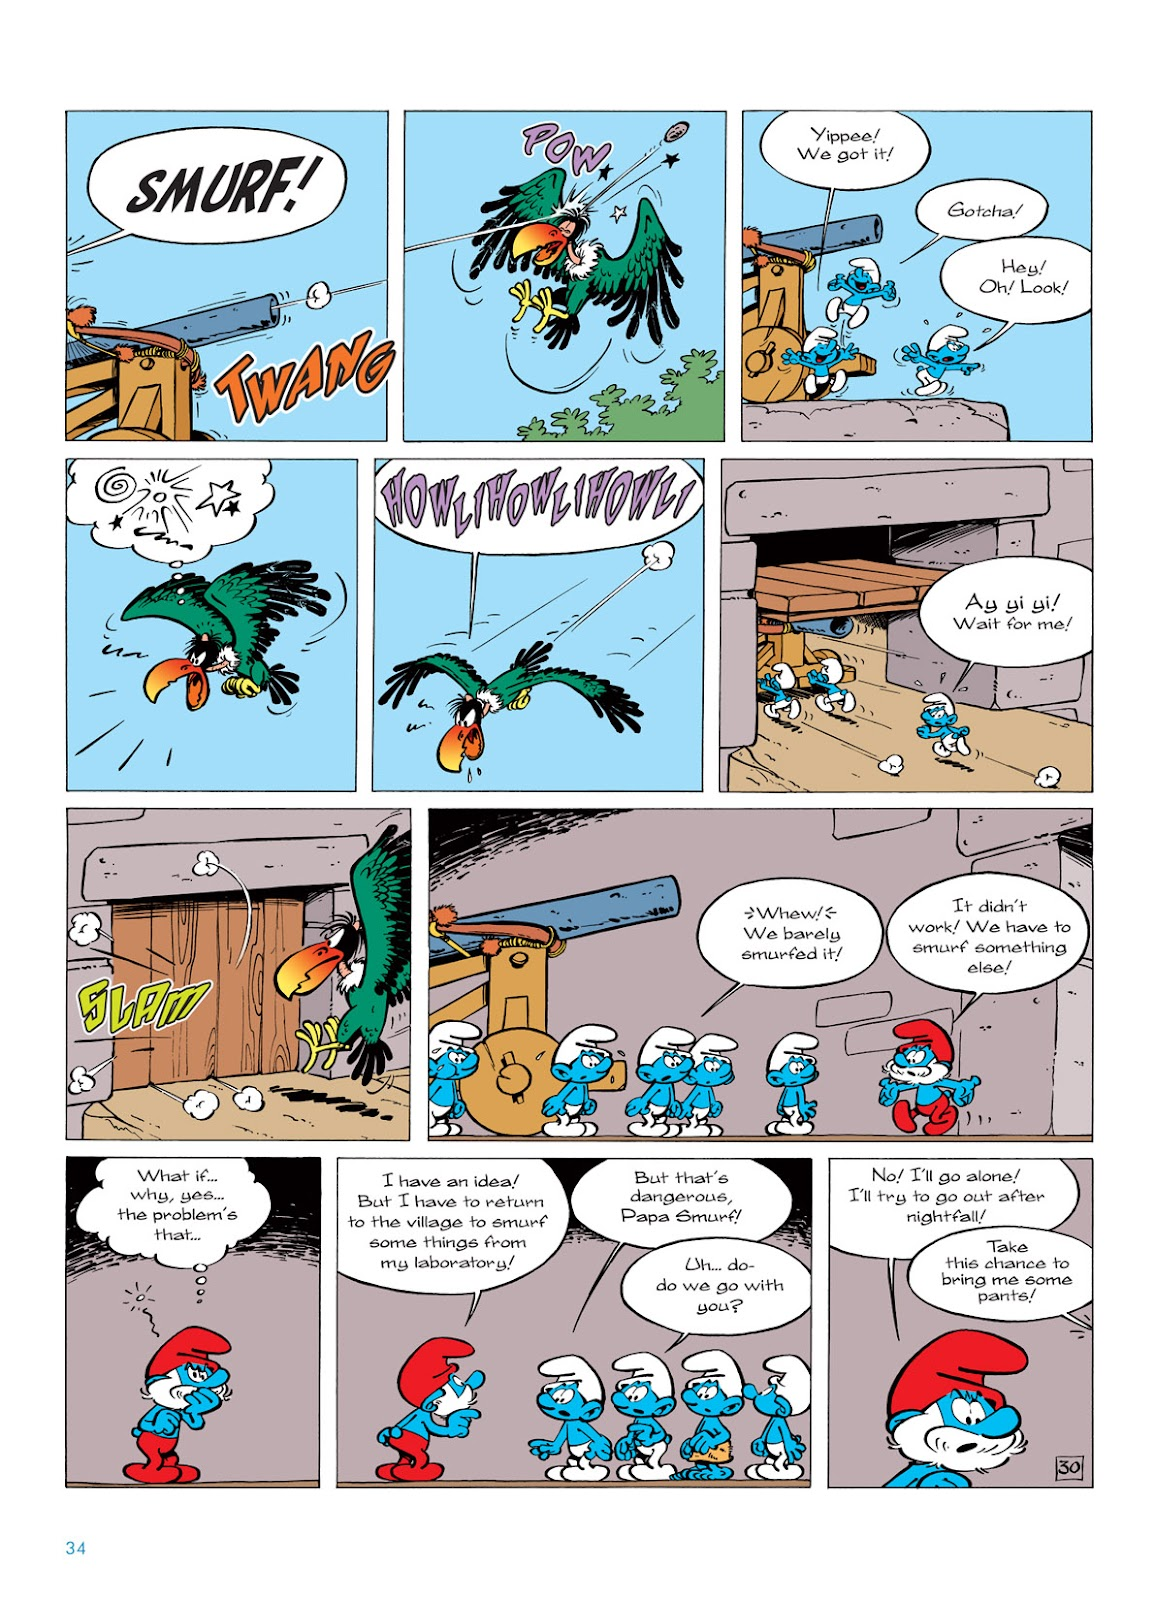 Read online The Smurfs comic -  Issue #6 - 34